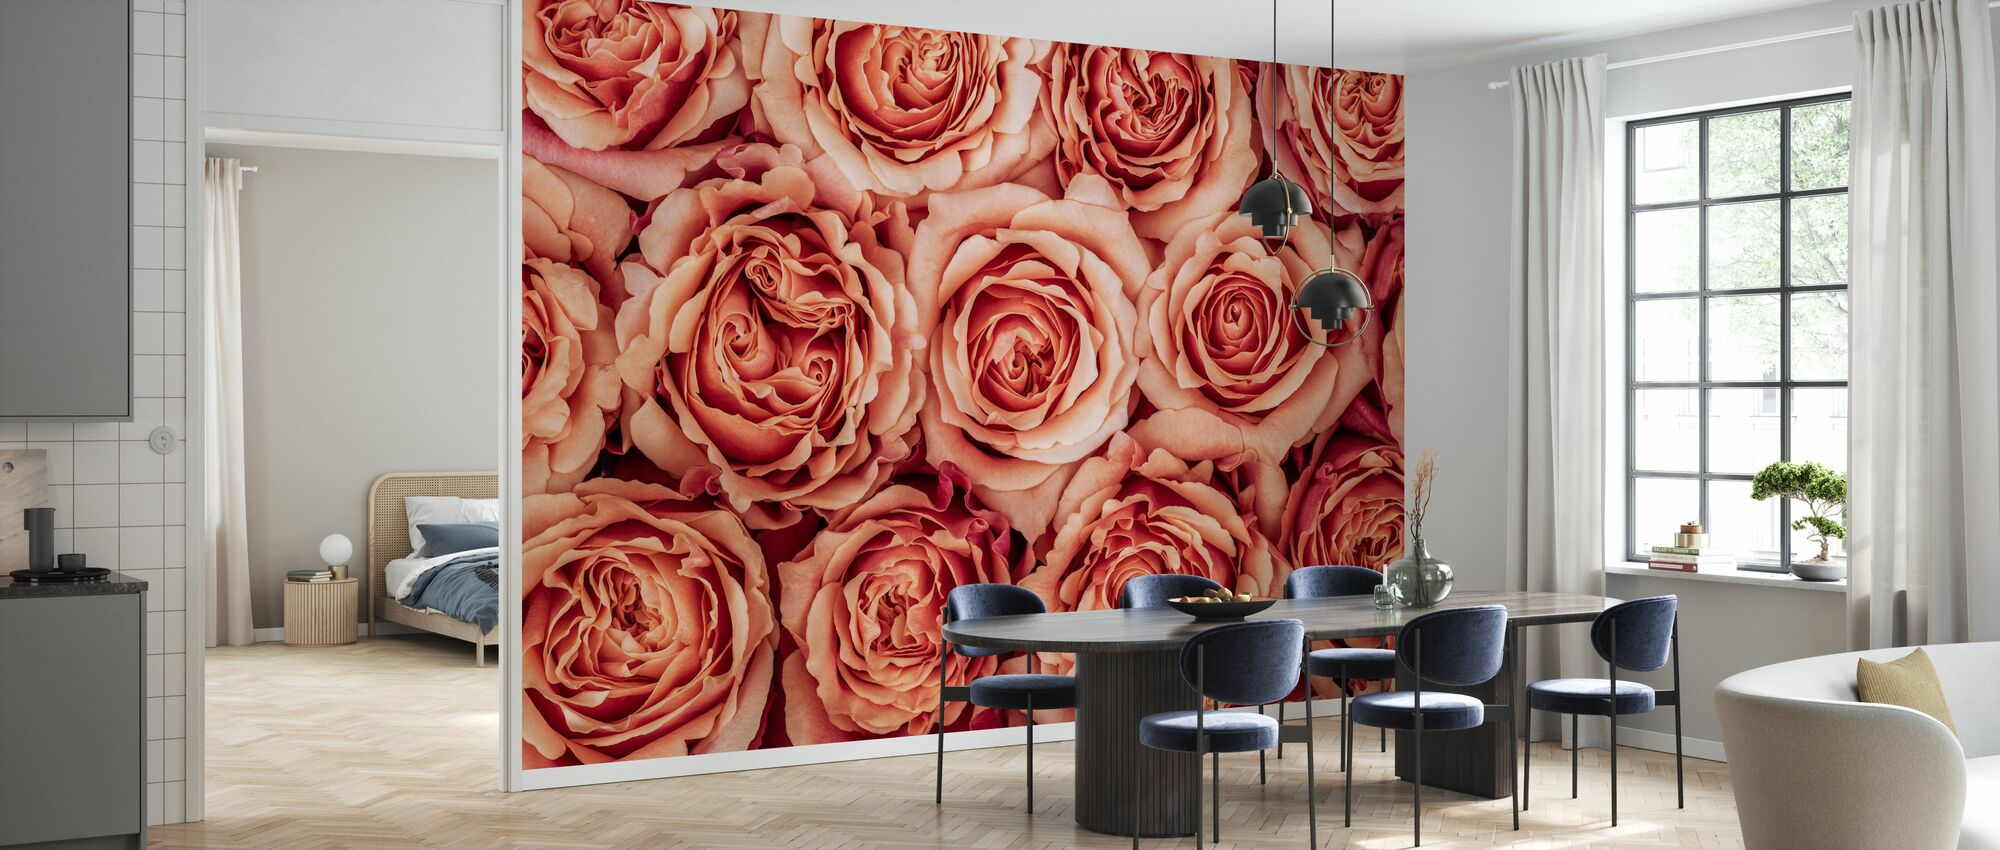 Roses - Wallpaper - Kitchen